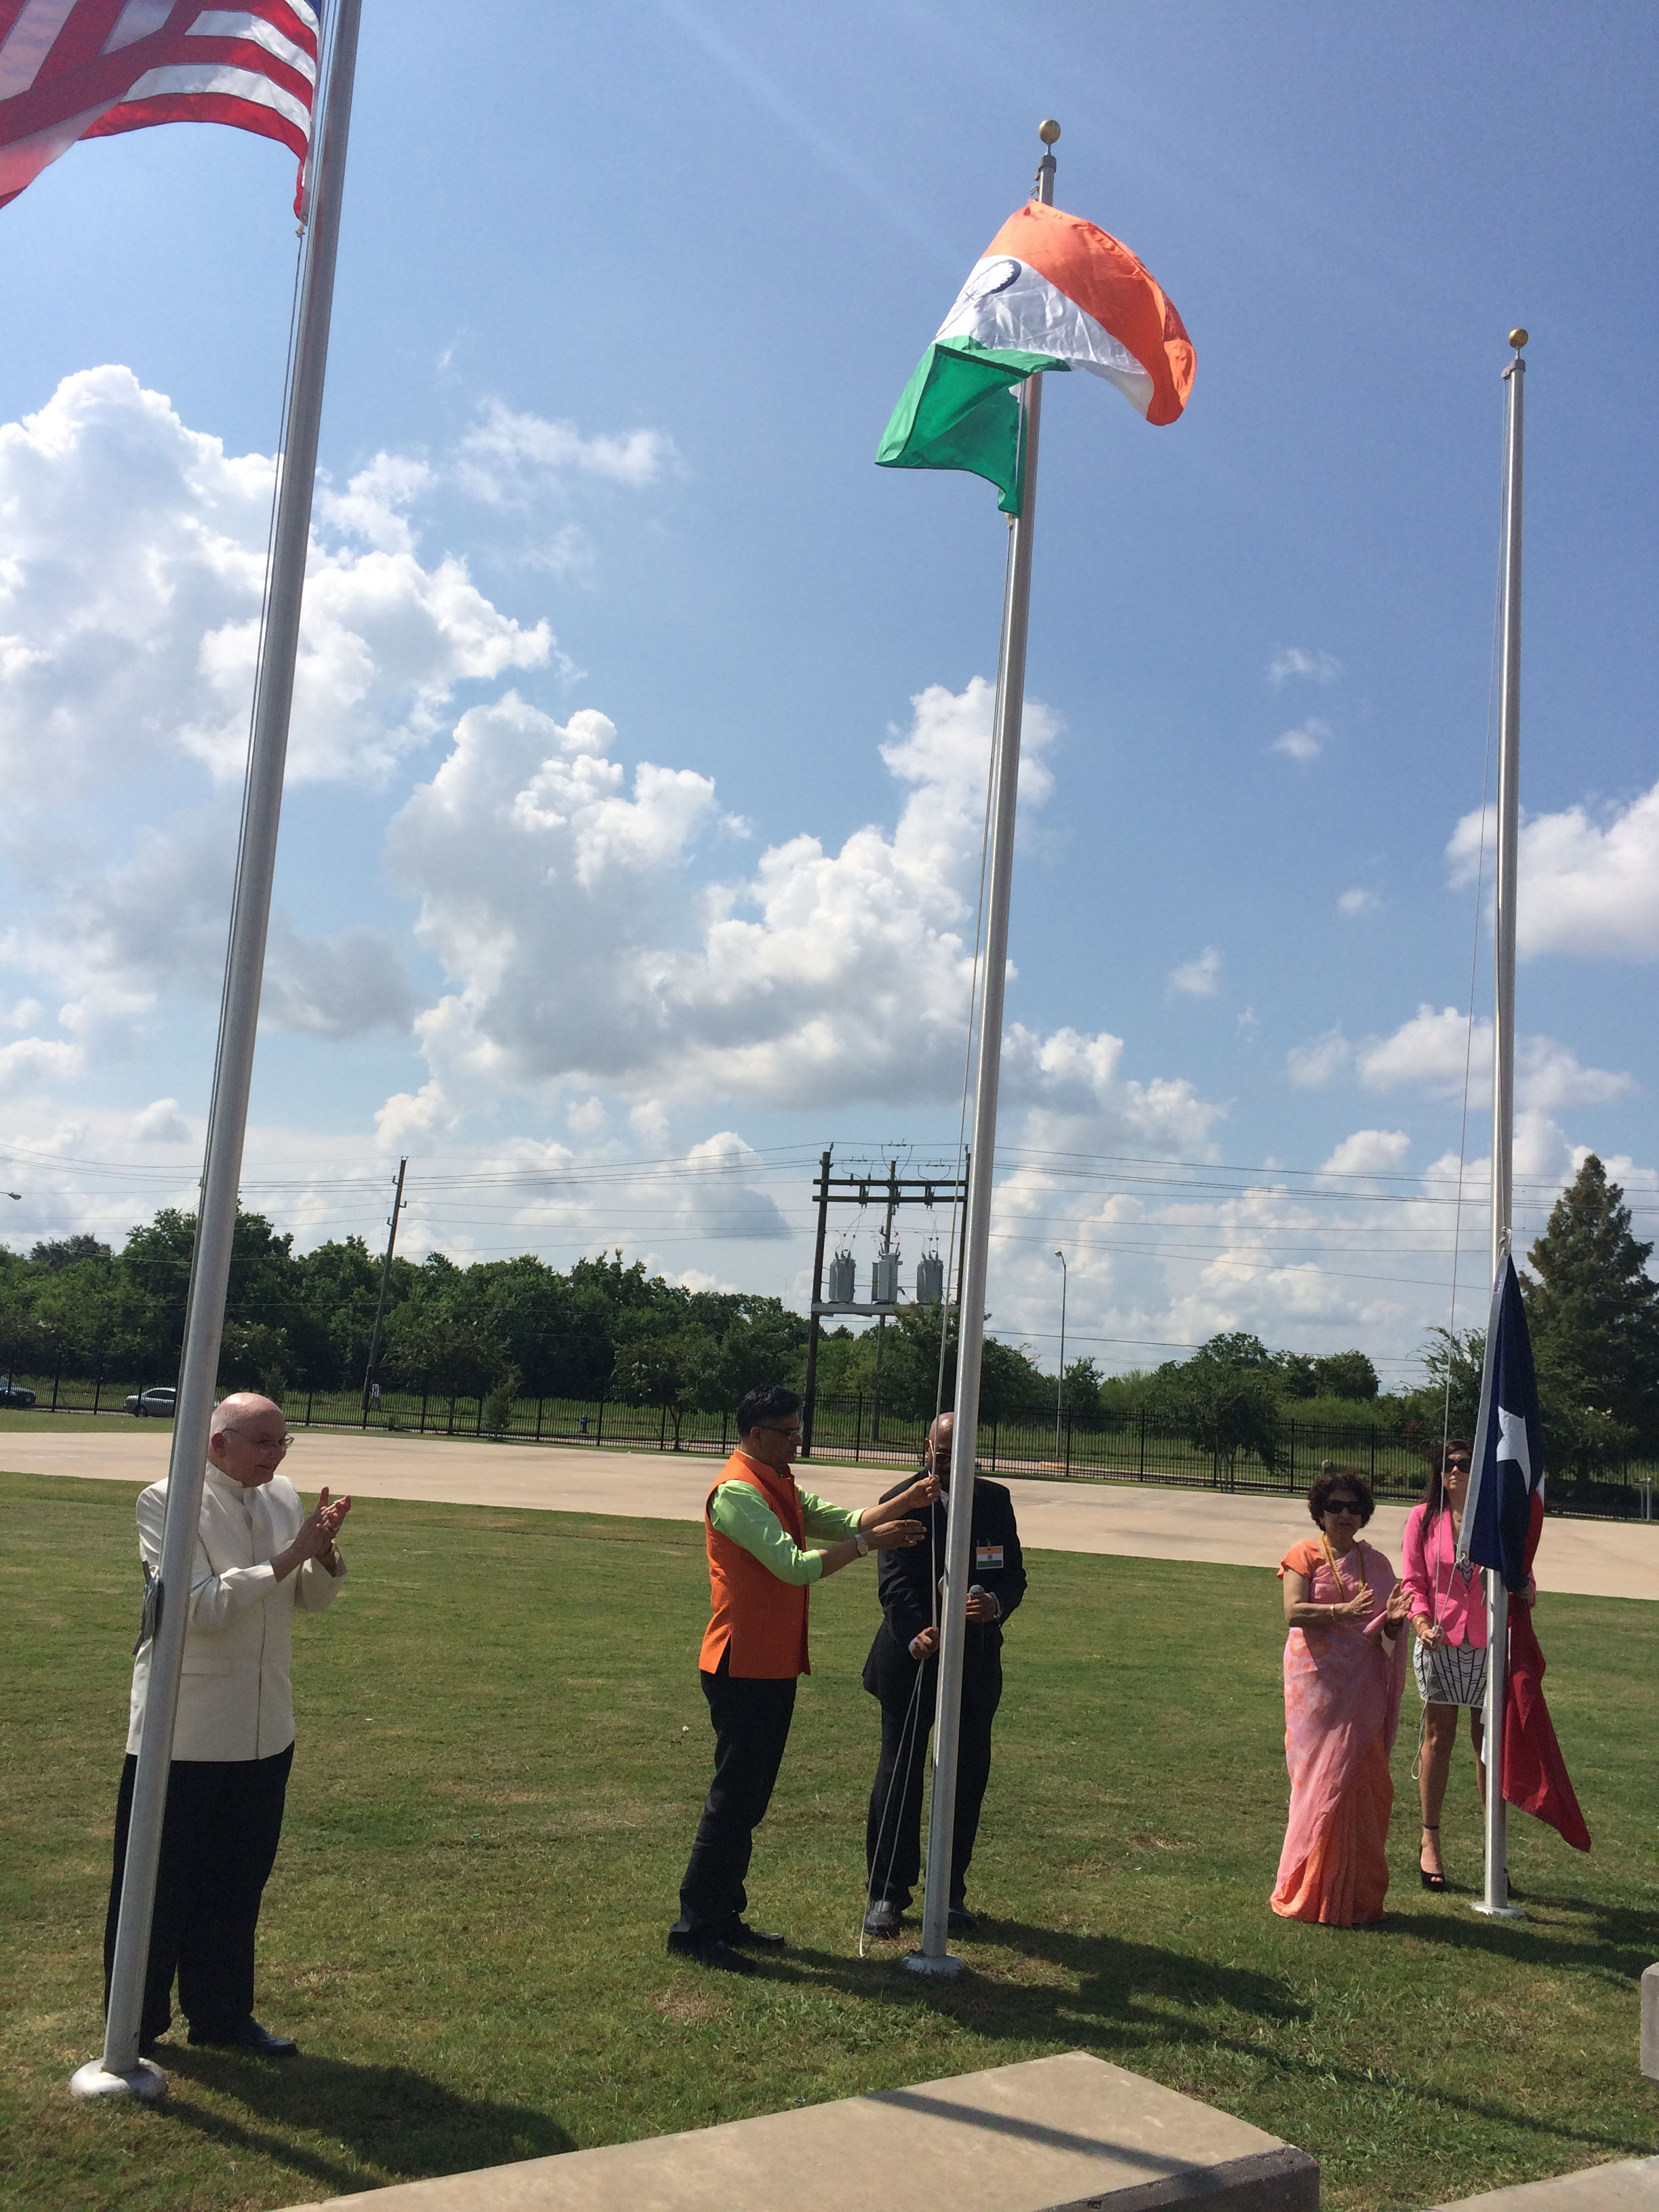 The Flag hoisting ceremony